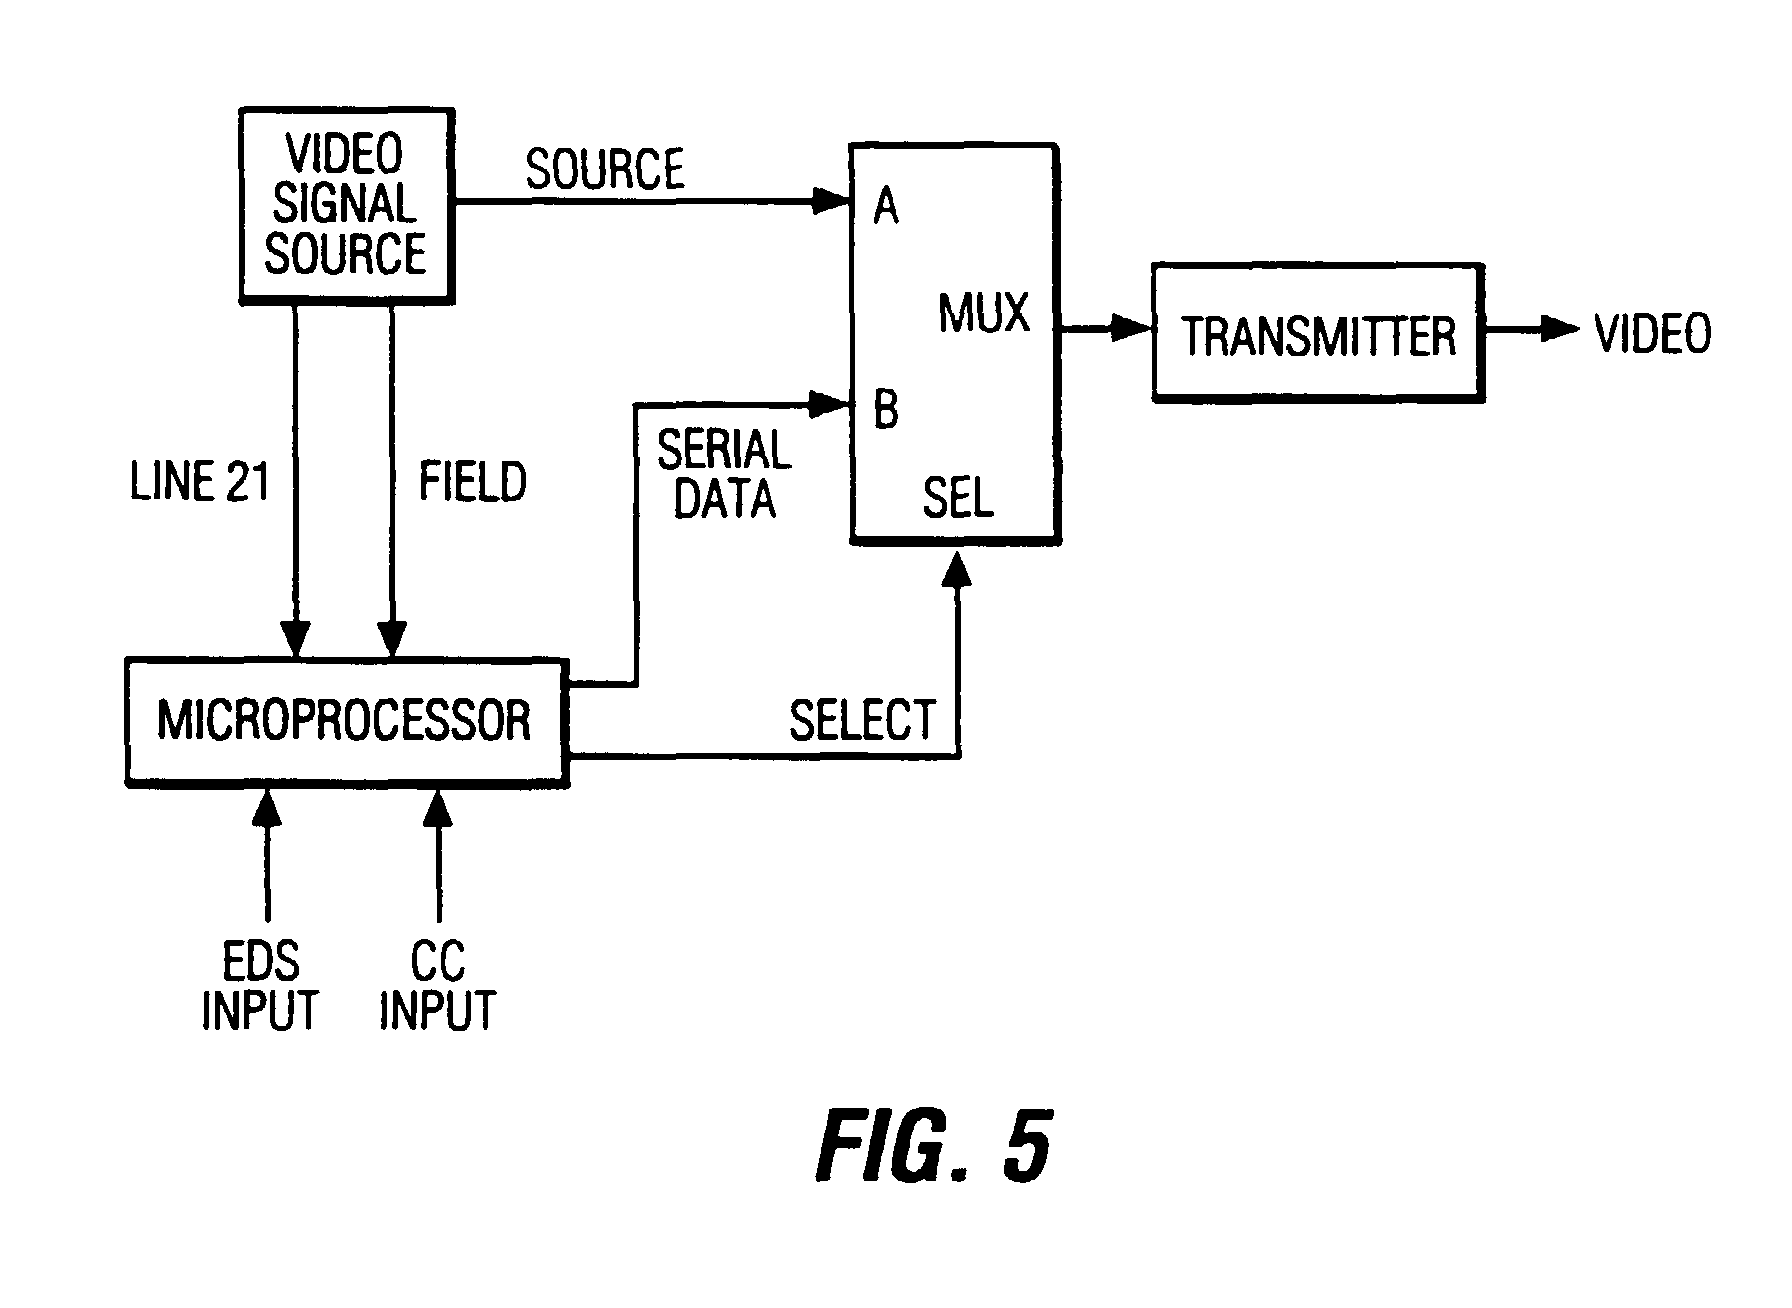 patente epb auxiliary video information system including patent drawing